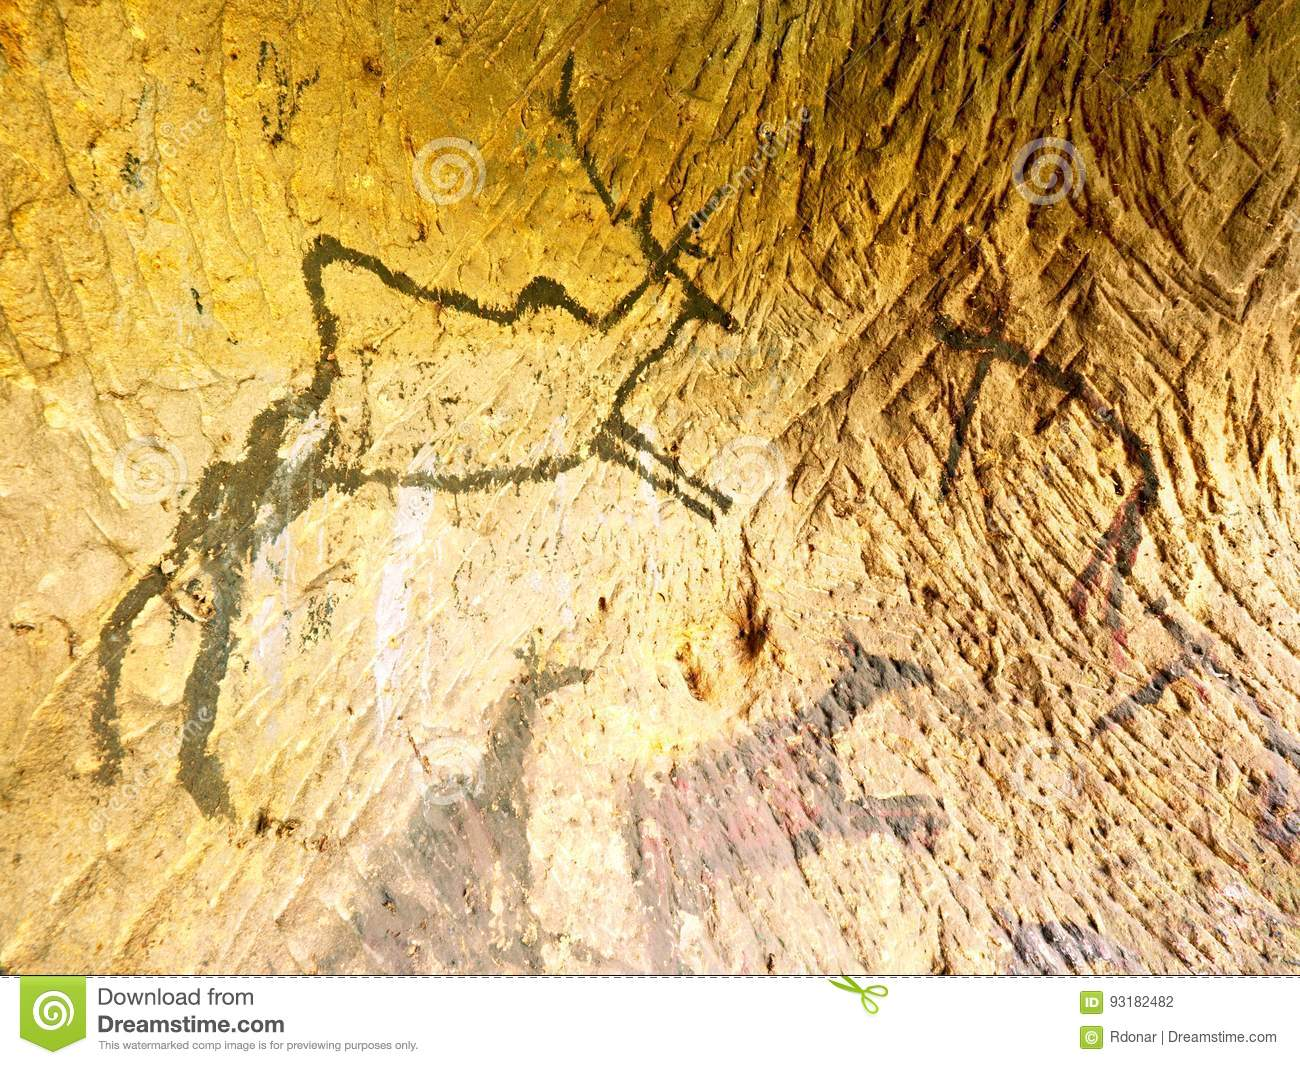 Black Carbon Paint Of Deer On Sandstone Wall, Prehistorical Picture ...